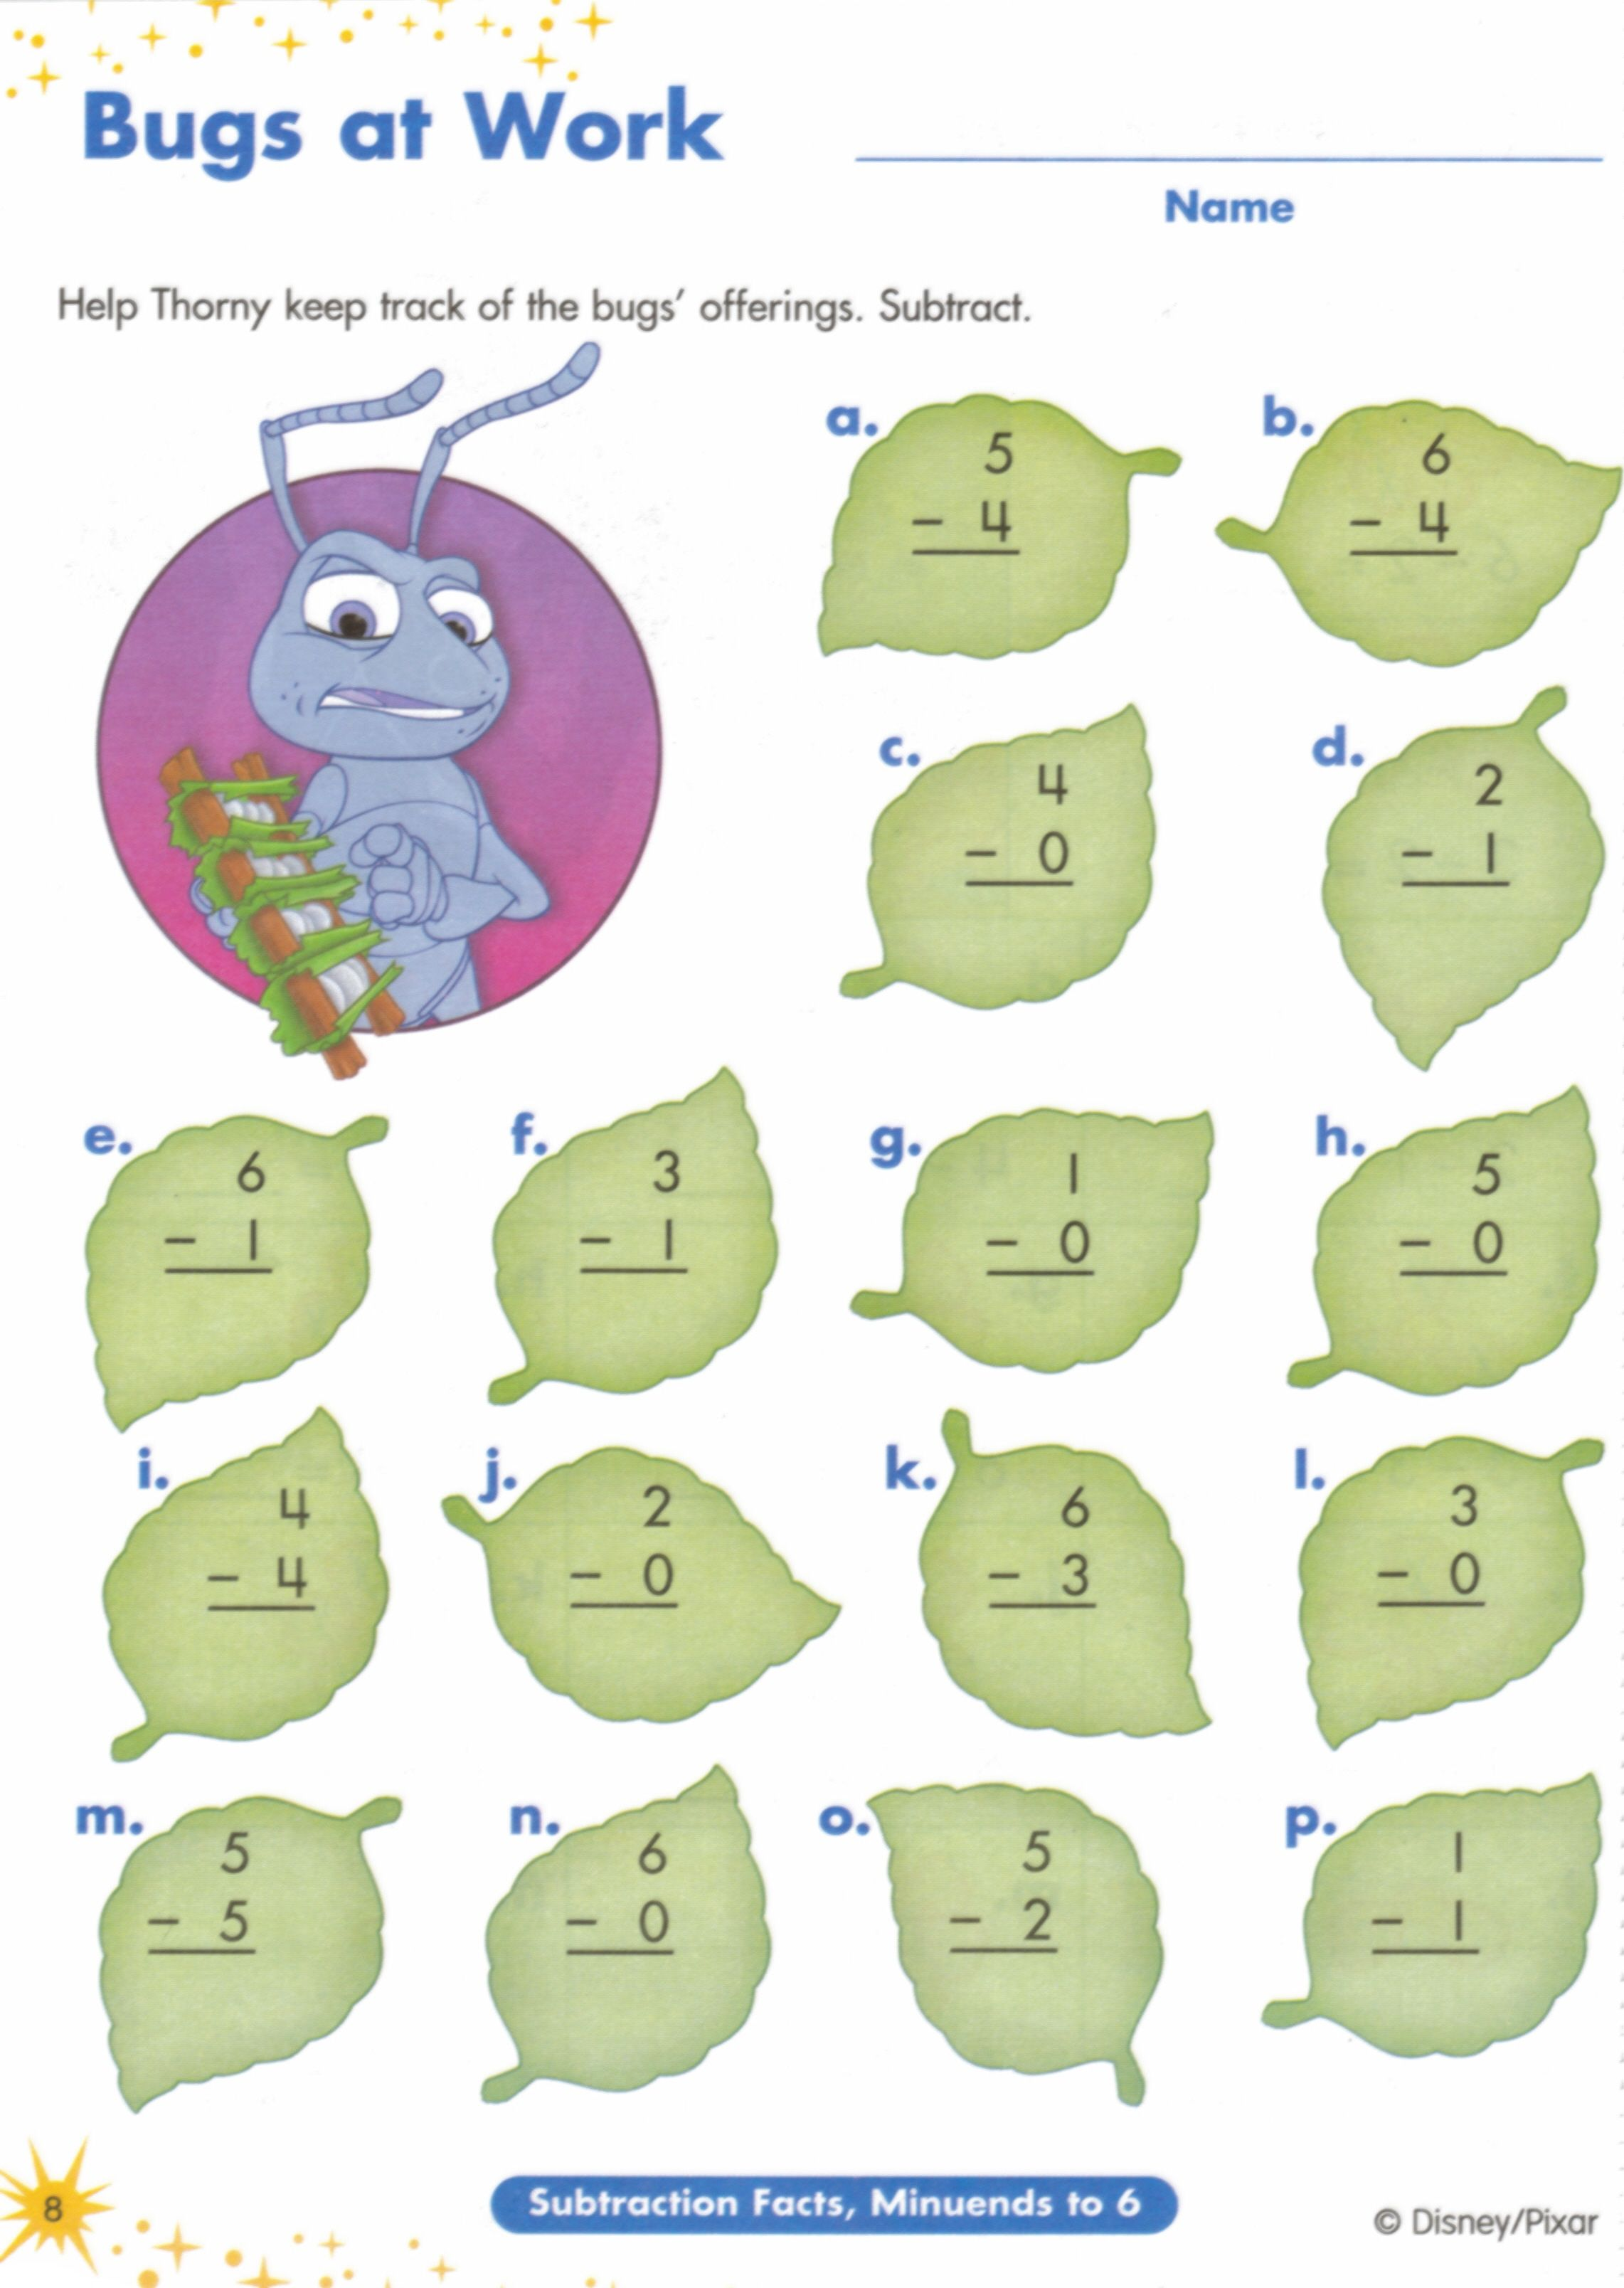 Proatmealus  Nice  Images About Worksheets On Pinterest  Fun Facts For Kids  With Great  Images About Worksheets On Pinterest  Fun Facts For Kids Earth Day Worksheets And Jungles With Beautiful Lowest Common Multiples Worksheet Also Year  Algebra Worksheets In Addition Remembrance Day Worksheets And Homophones Worksheet Free As Well As Fact Families Multiplication And Division Worksheet Additionally Healthy Teeth Worksheet From Pinterestcom With Proatmealus  Great  Images About Worksheets On Pinterest  Fun Facts For Kids  With Beautiful  Images About Worksheets On Pinterest  Fun Facts For Kids Earth Day Worksheets And Jungles And Nice Lowest Common Multiples Worksheet Also Year  Algebra Worksheets In Addition Remembrance Day Worksheets From Pinterestcom